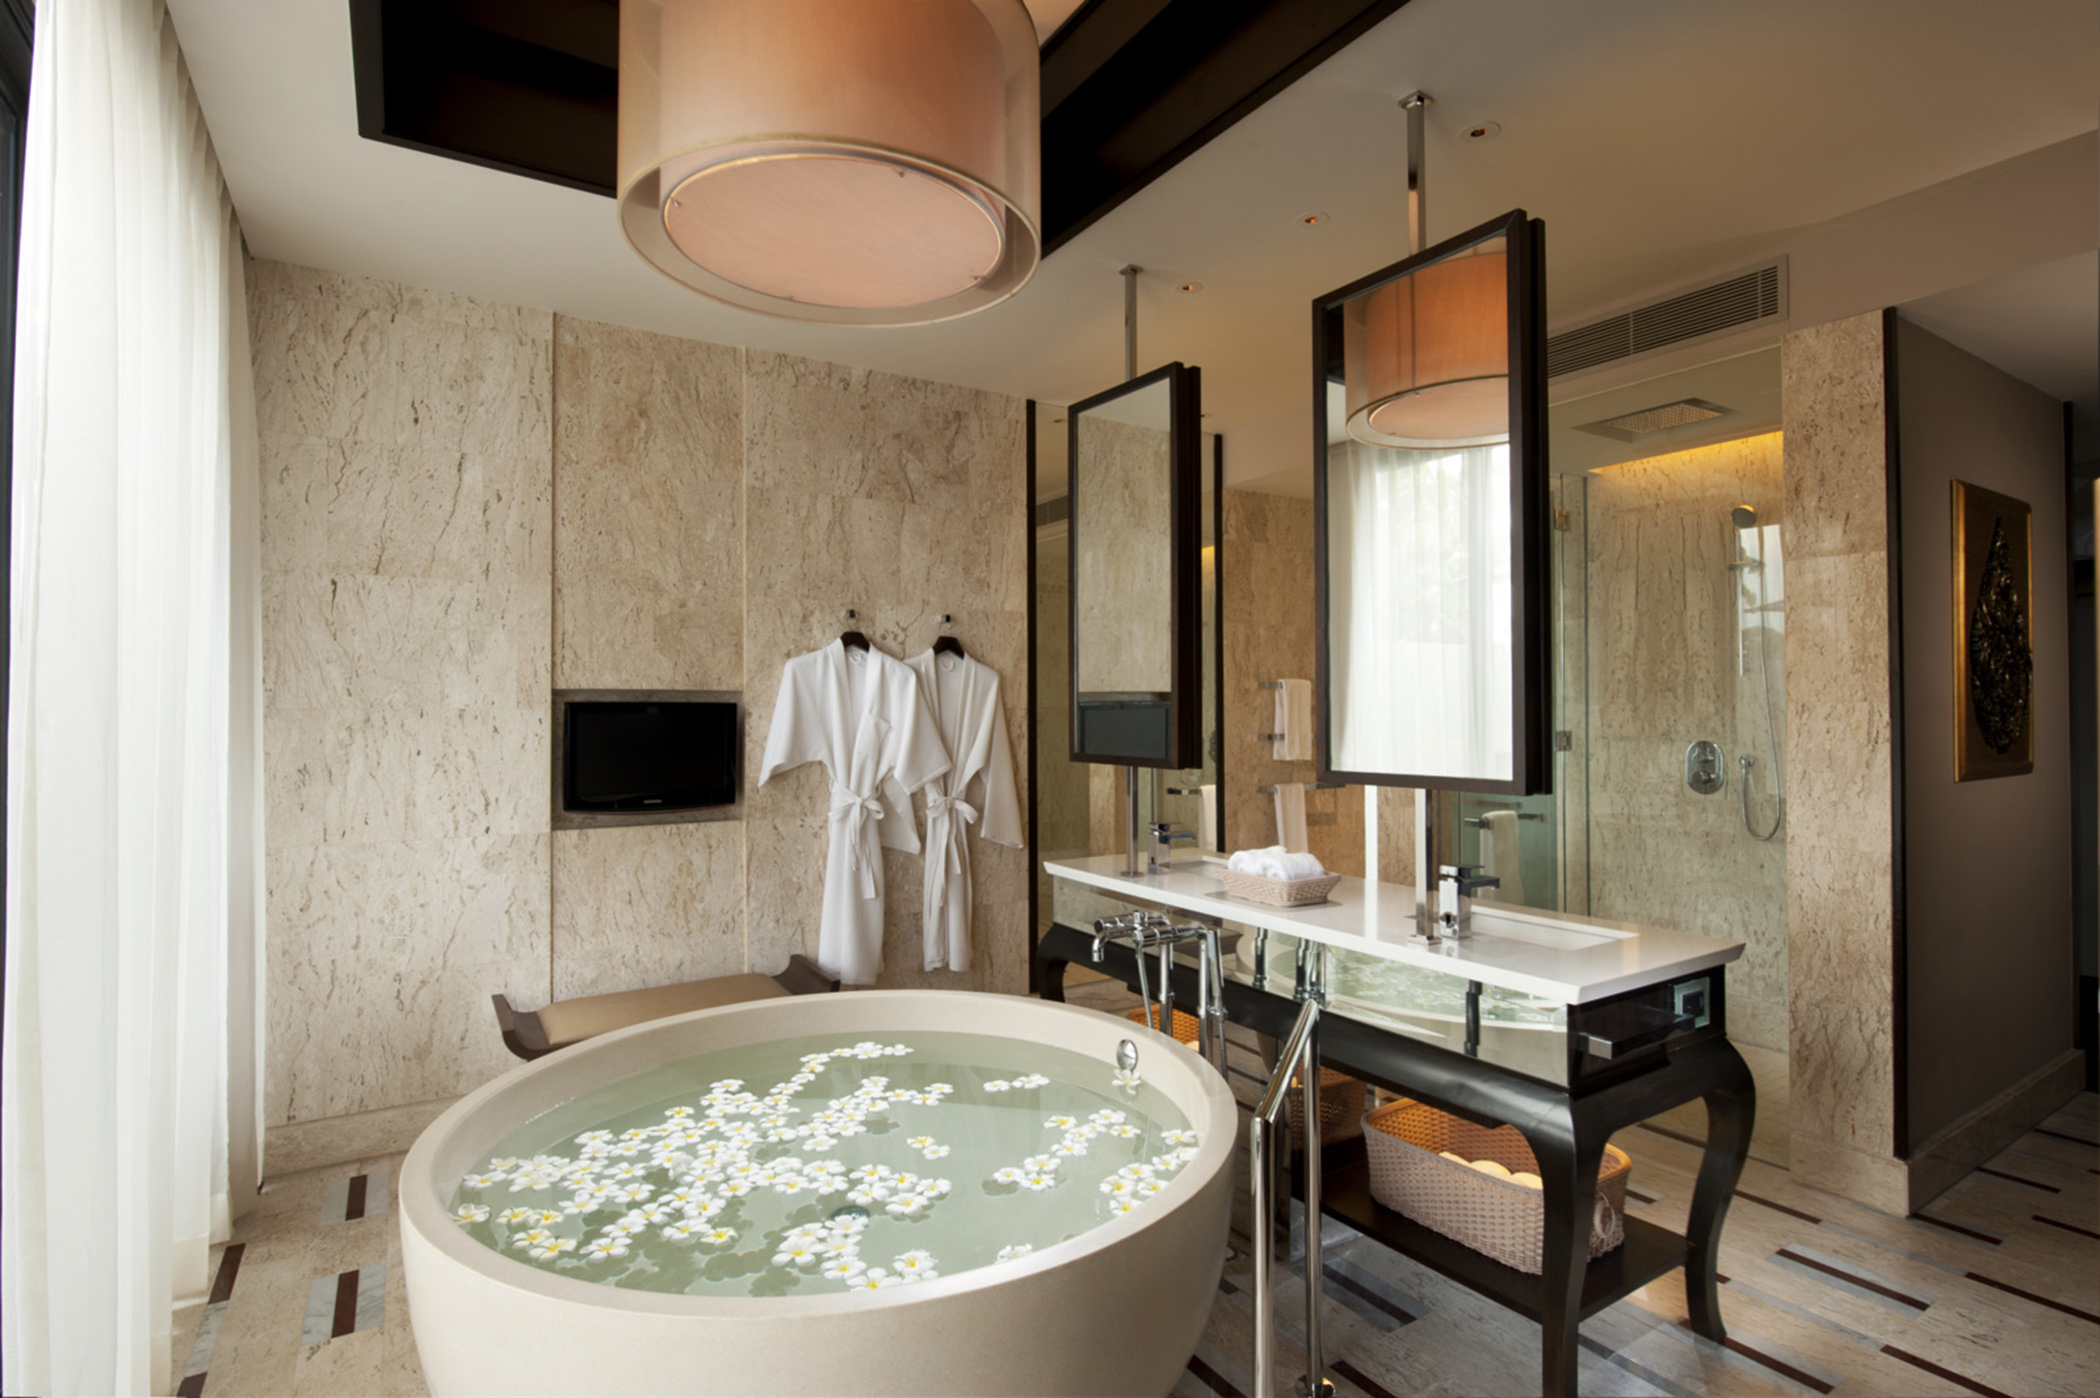 """The vanity counter and standalone bathtub sit on this marble """"carpet"""",adding warmth and a luxurious feel."""